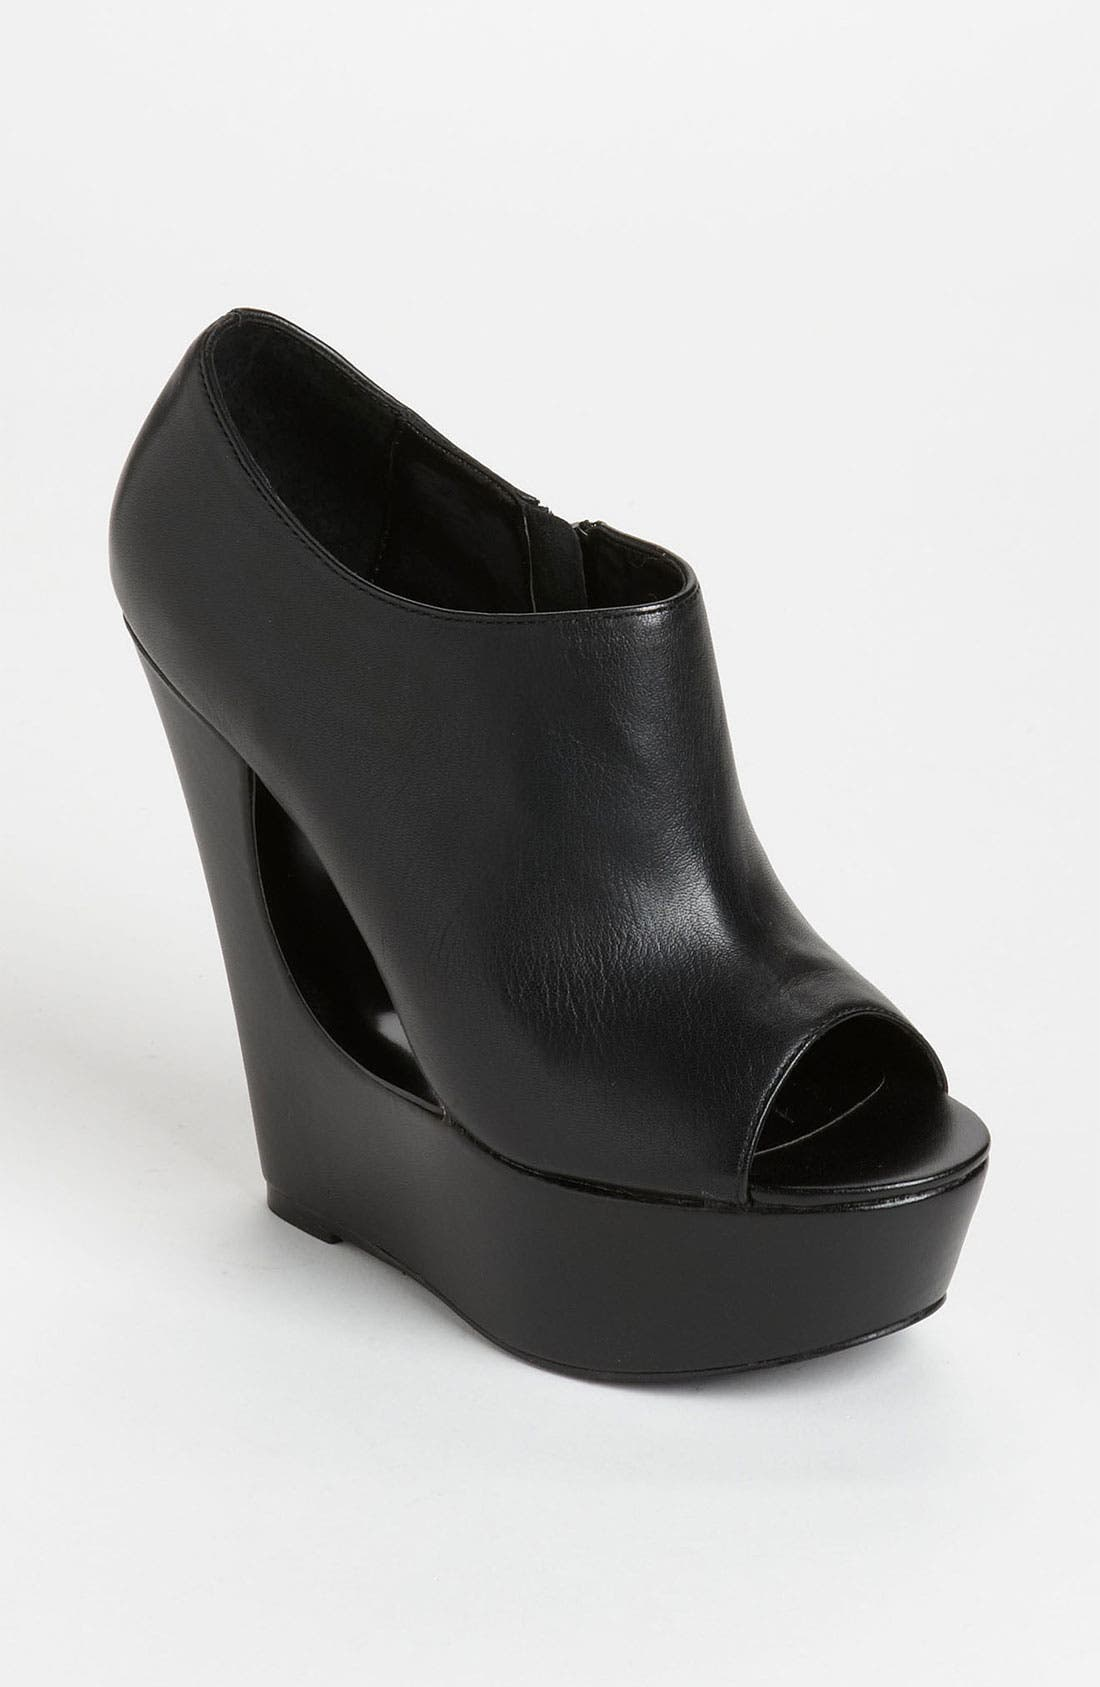 Alternate Image 1 Selected - Steve Madden 'Delttaa' Bootie